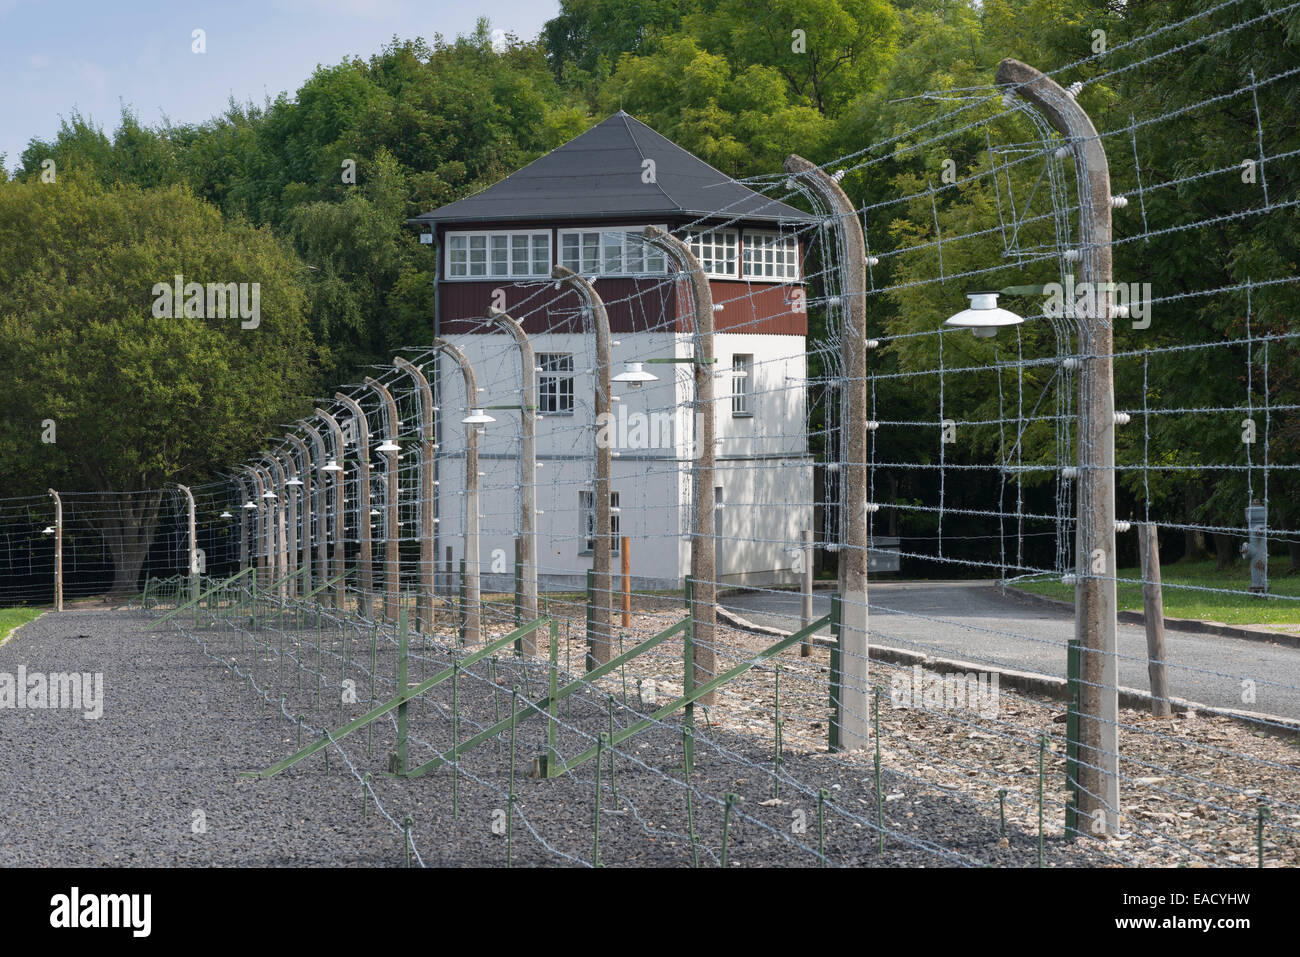 Reconstructed camp fence with watchtower, Buchenwald concentration camp, Weimar, Thuringia, Germany - Stock Image